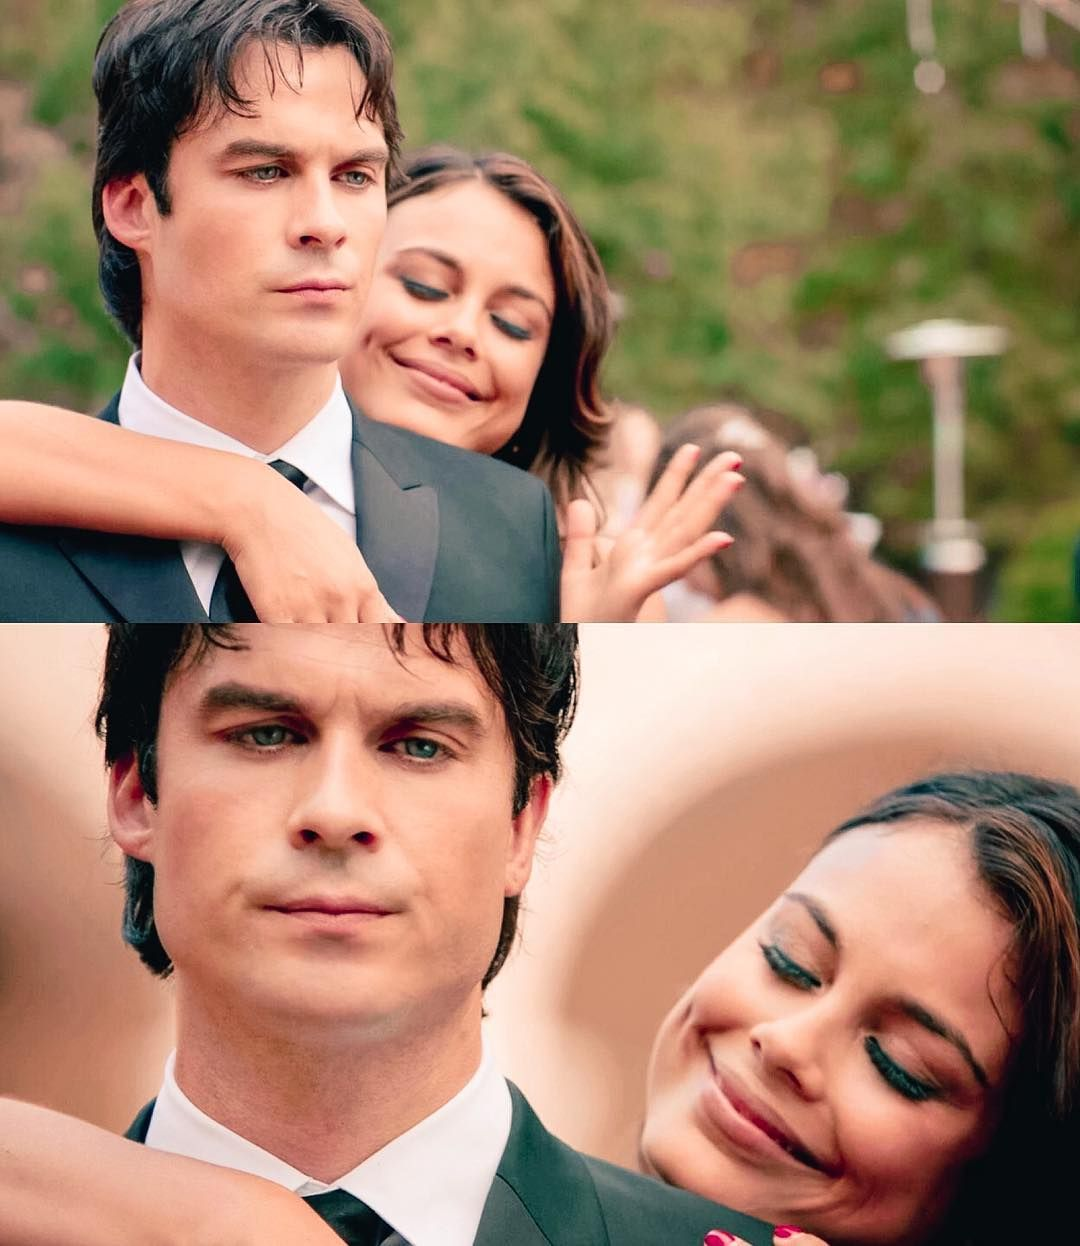 """#TVD 8x09 """"The Simple Intimacy of the Near Touch"""" - Damon and Sybil"""